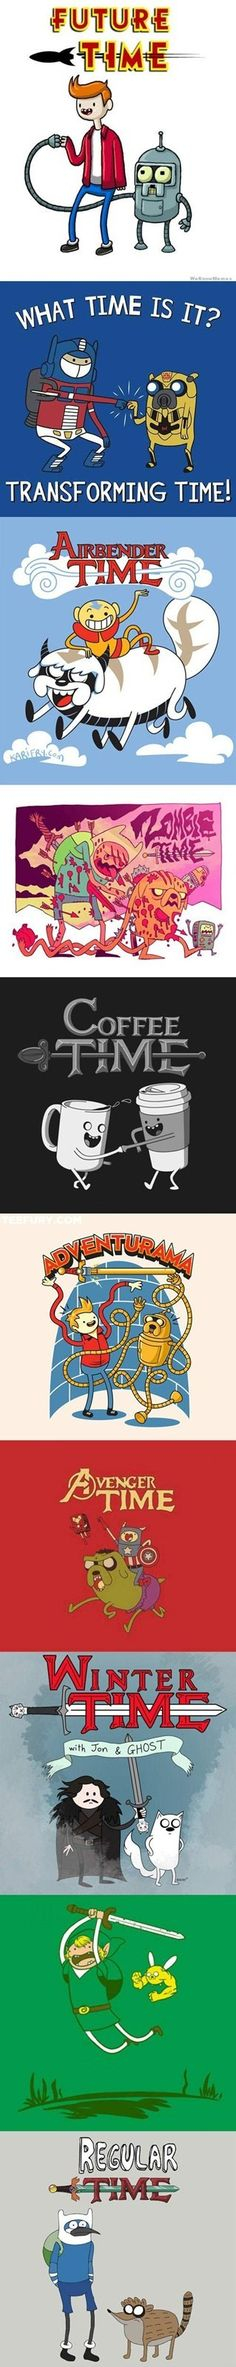 Awesome Time - Adventure Time Crossovers mira amor @Jose Oliva :D